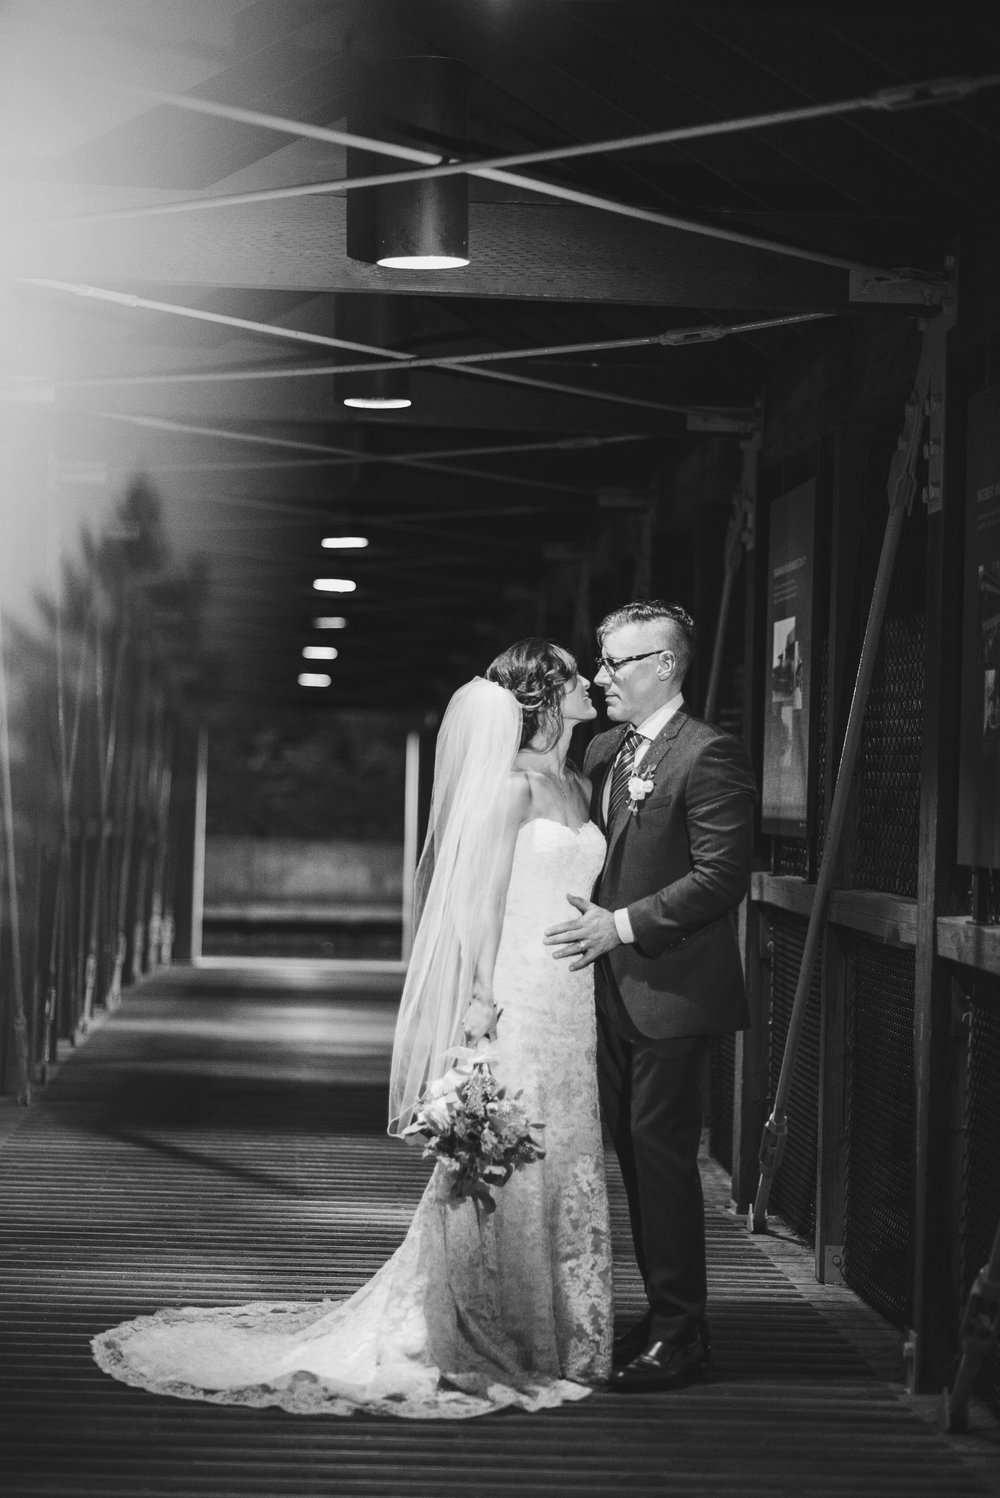 Salish Lodge Wedding_Kelsey Lane Photography_Montana Wedding Photographer_Missoula Wedding Photographer_Bozeman Wedding Photographer_bride and groom